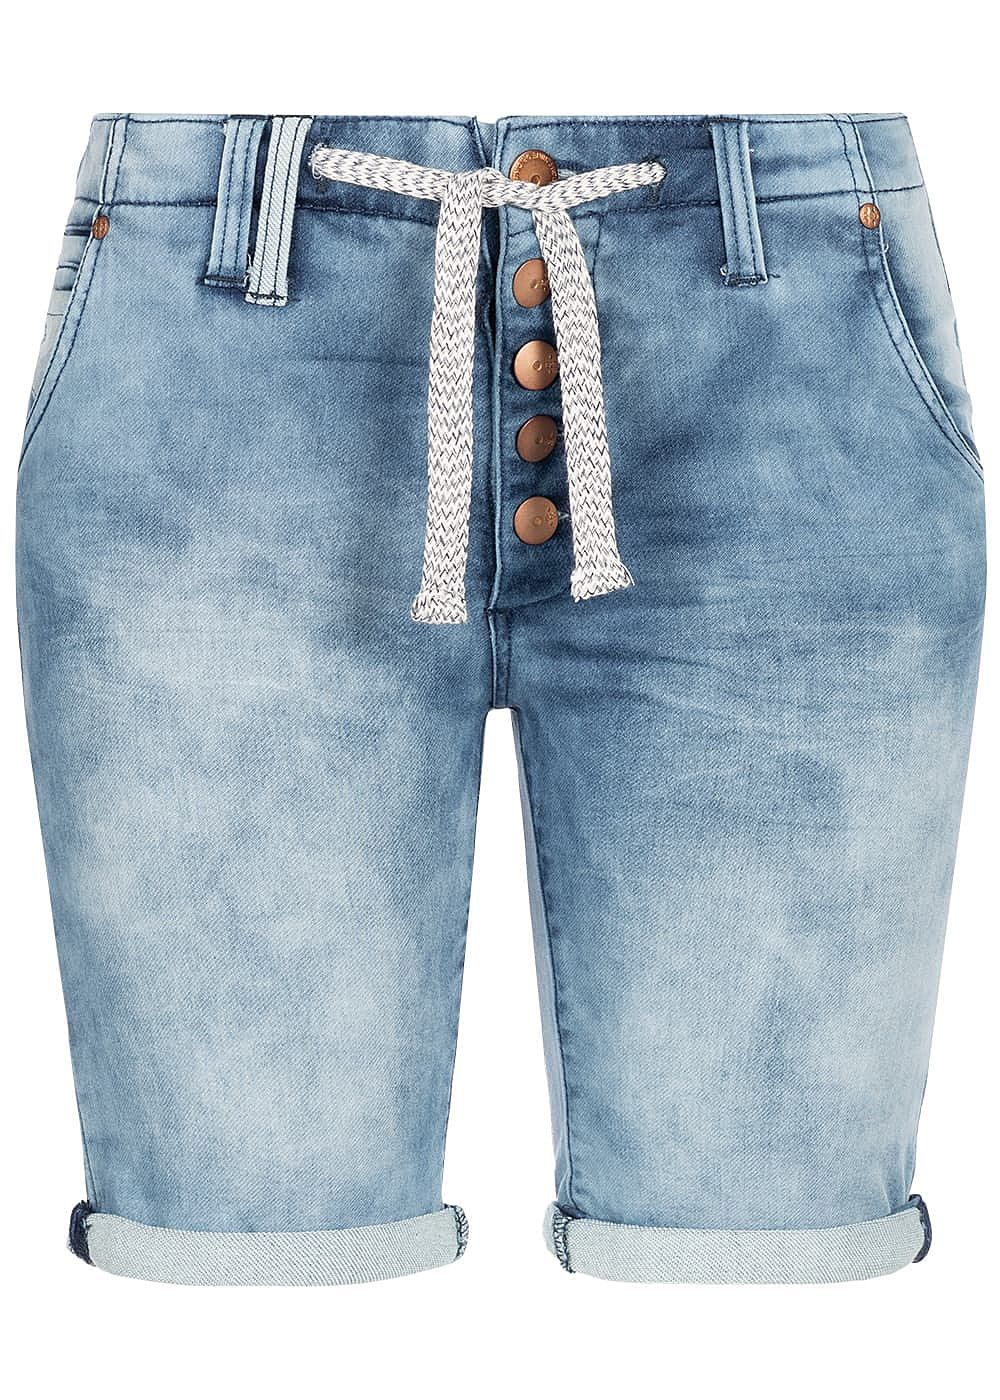 Eight2Nine Damen Denim Bermuda Shorts 5-Pockets Buttons Front hell blau denim - Art.-Nr.: 19041473